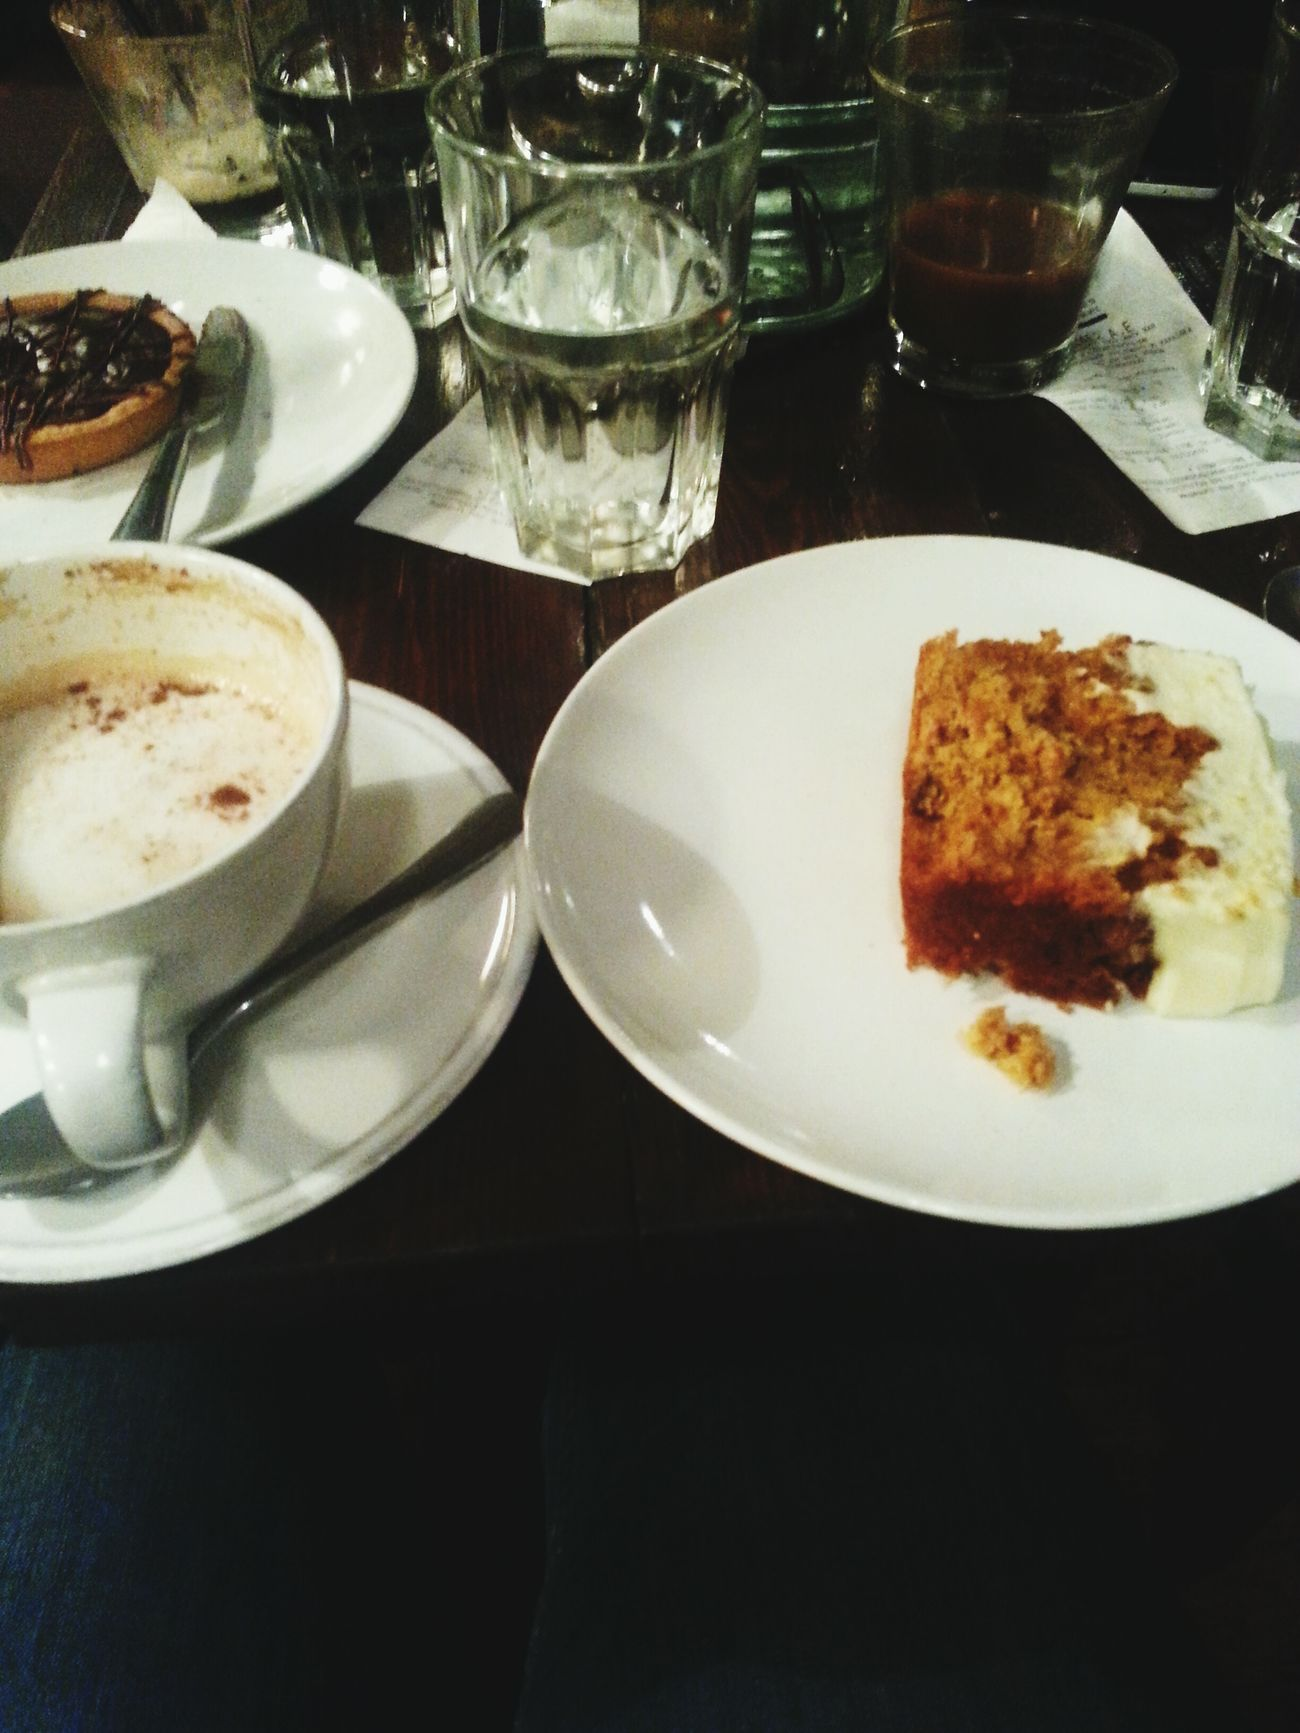 Carrot Cake Cappucino Sundayevening With Bestfriend